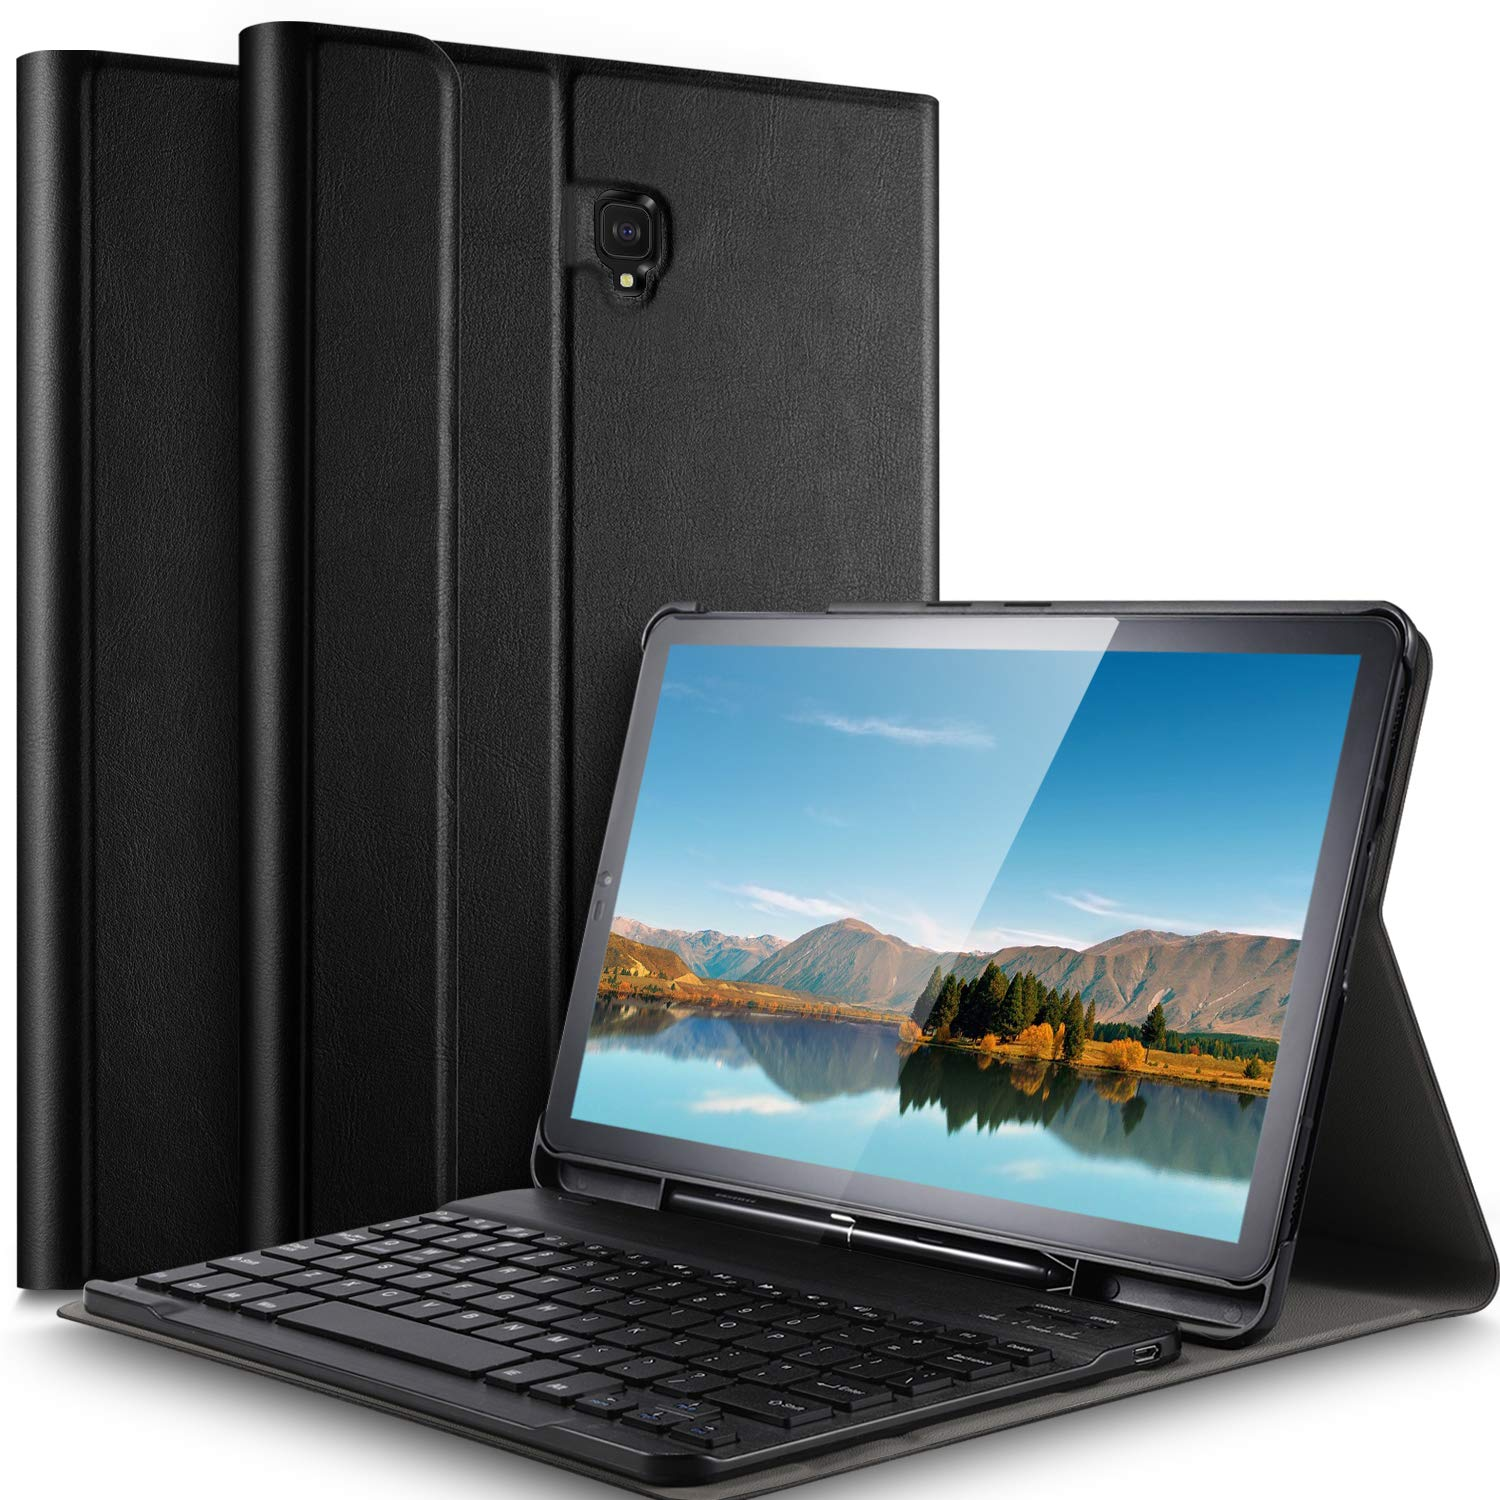 IVSO Samsung Galaxy Tab S4 10.5 Case with Keyboard - Detachable Wireless Keyboard Front Prop Stand Case for Samsung Galaxy Tab S4 SM-T830 Wi-Fi & SM-T835 4G LTE 10.5-inch 2018 Release Tablet (Black)